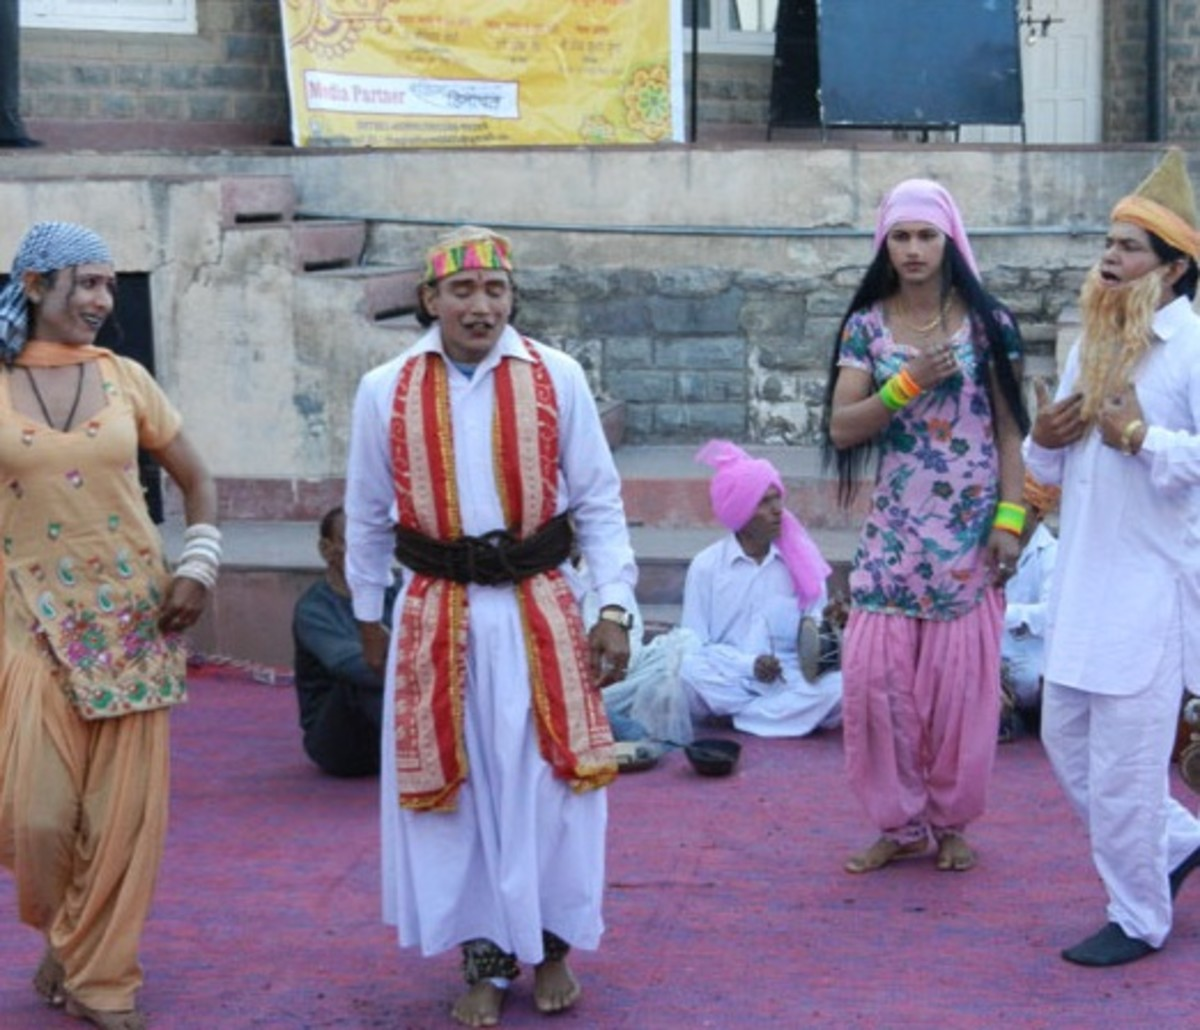 The folk-theater form of Shimla, Sirmaur and Solan districts has crude humor and its beauty lies in its rustic vulgarity, not obscenity.